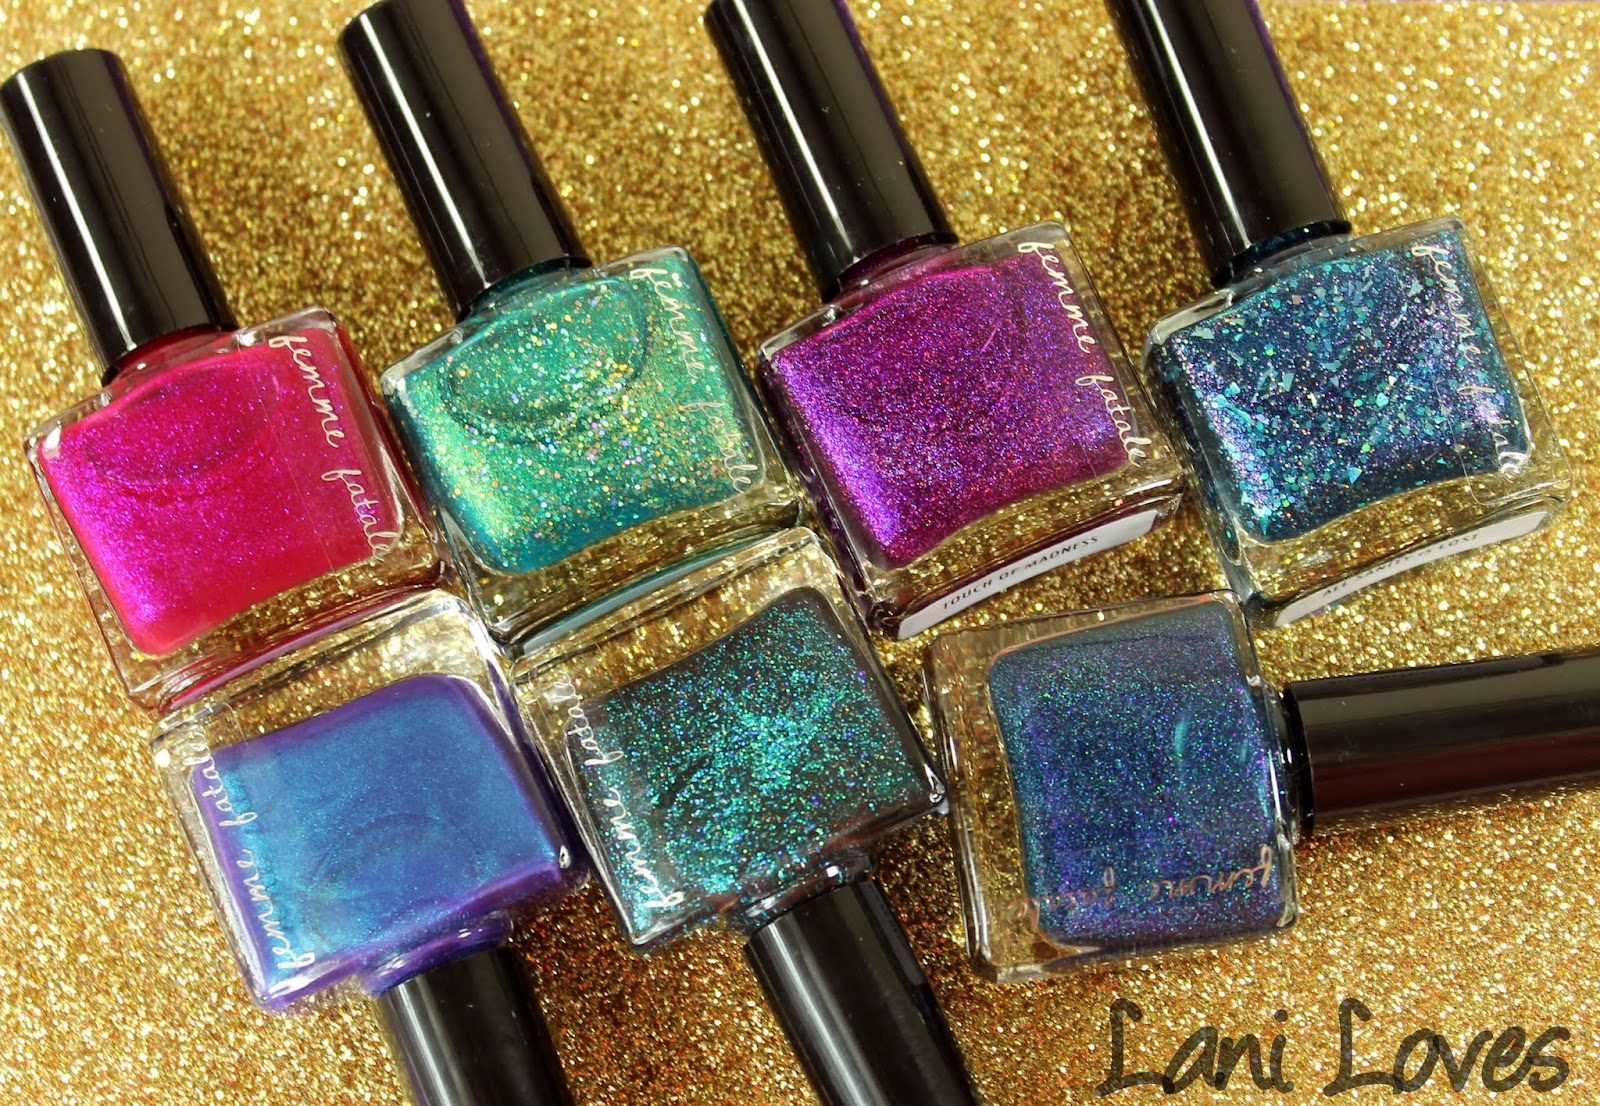 Femme Fatale Cosmetics January Presale Nail Polish Collection Swatches & Review